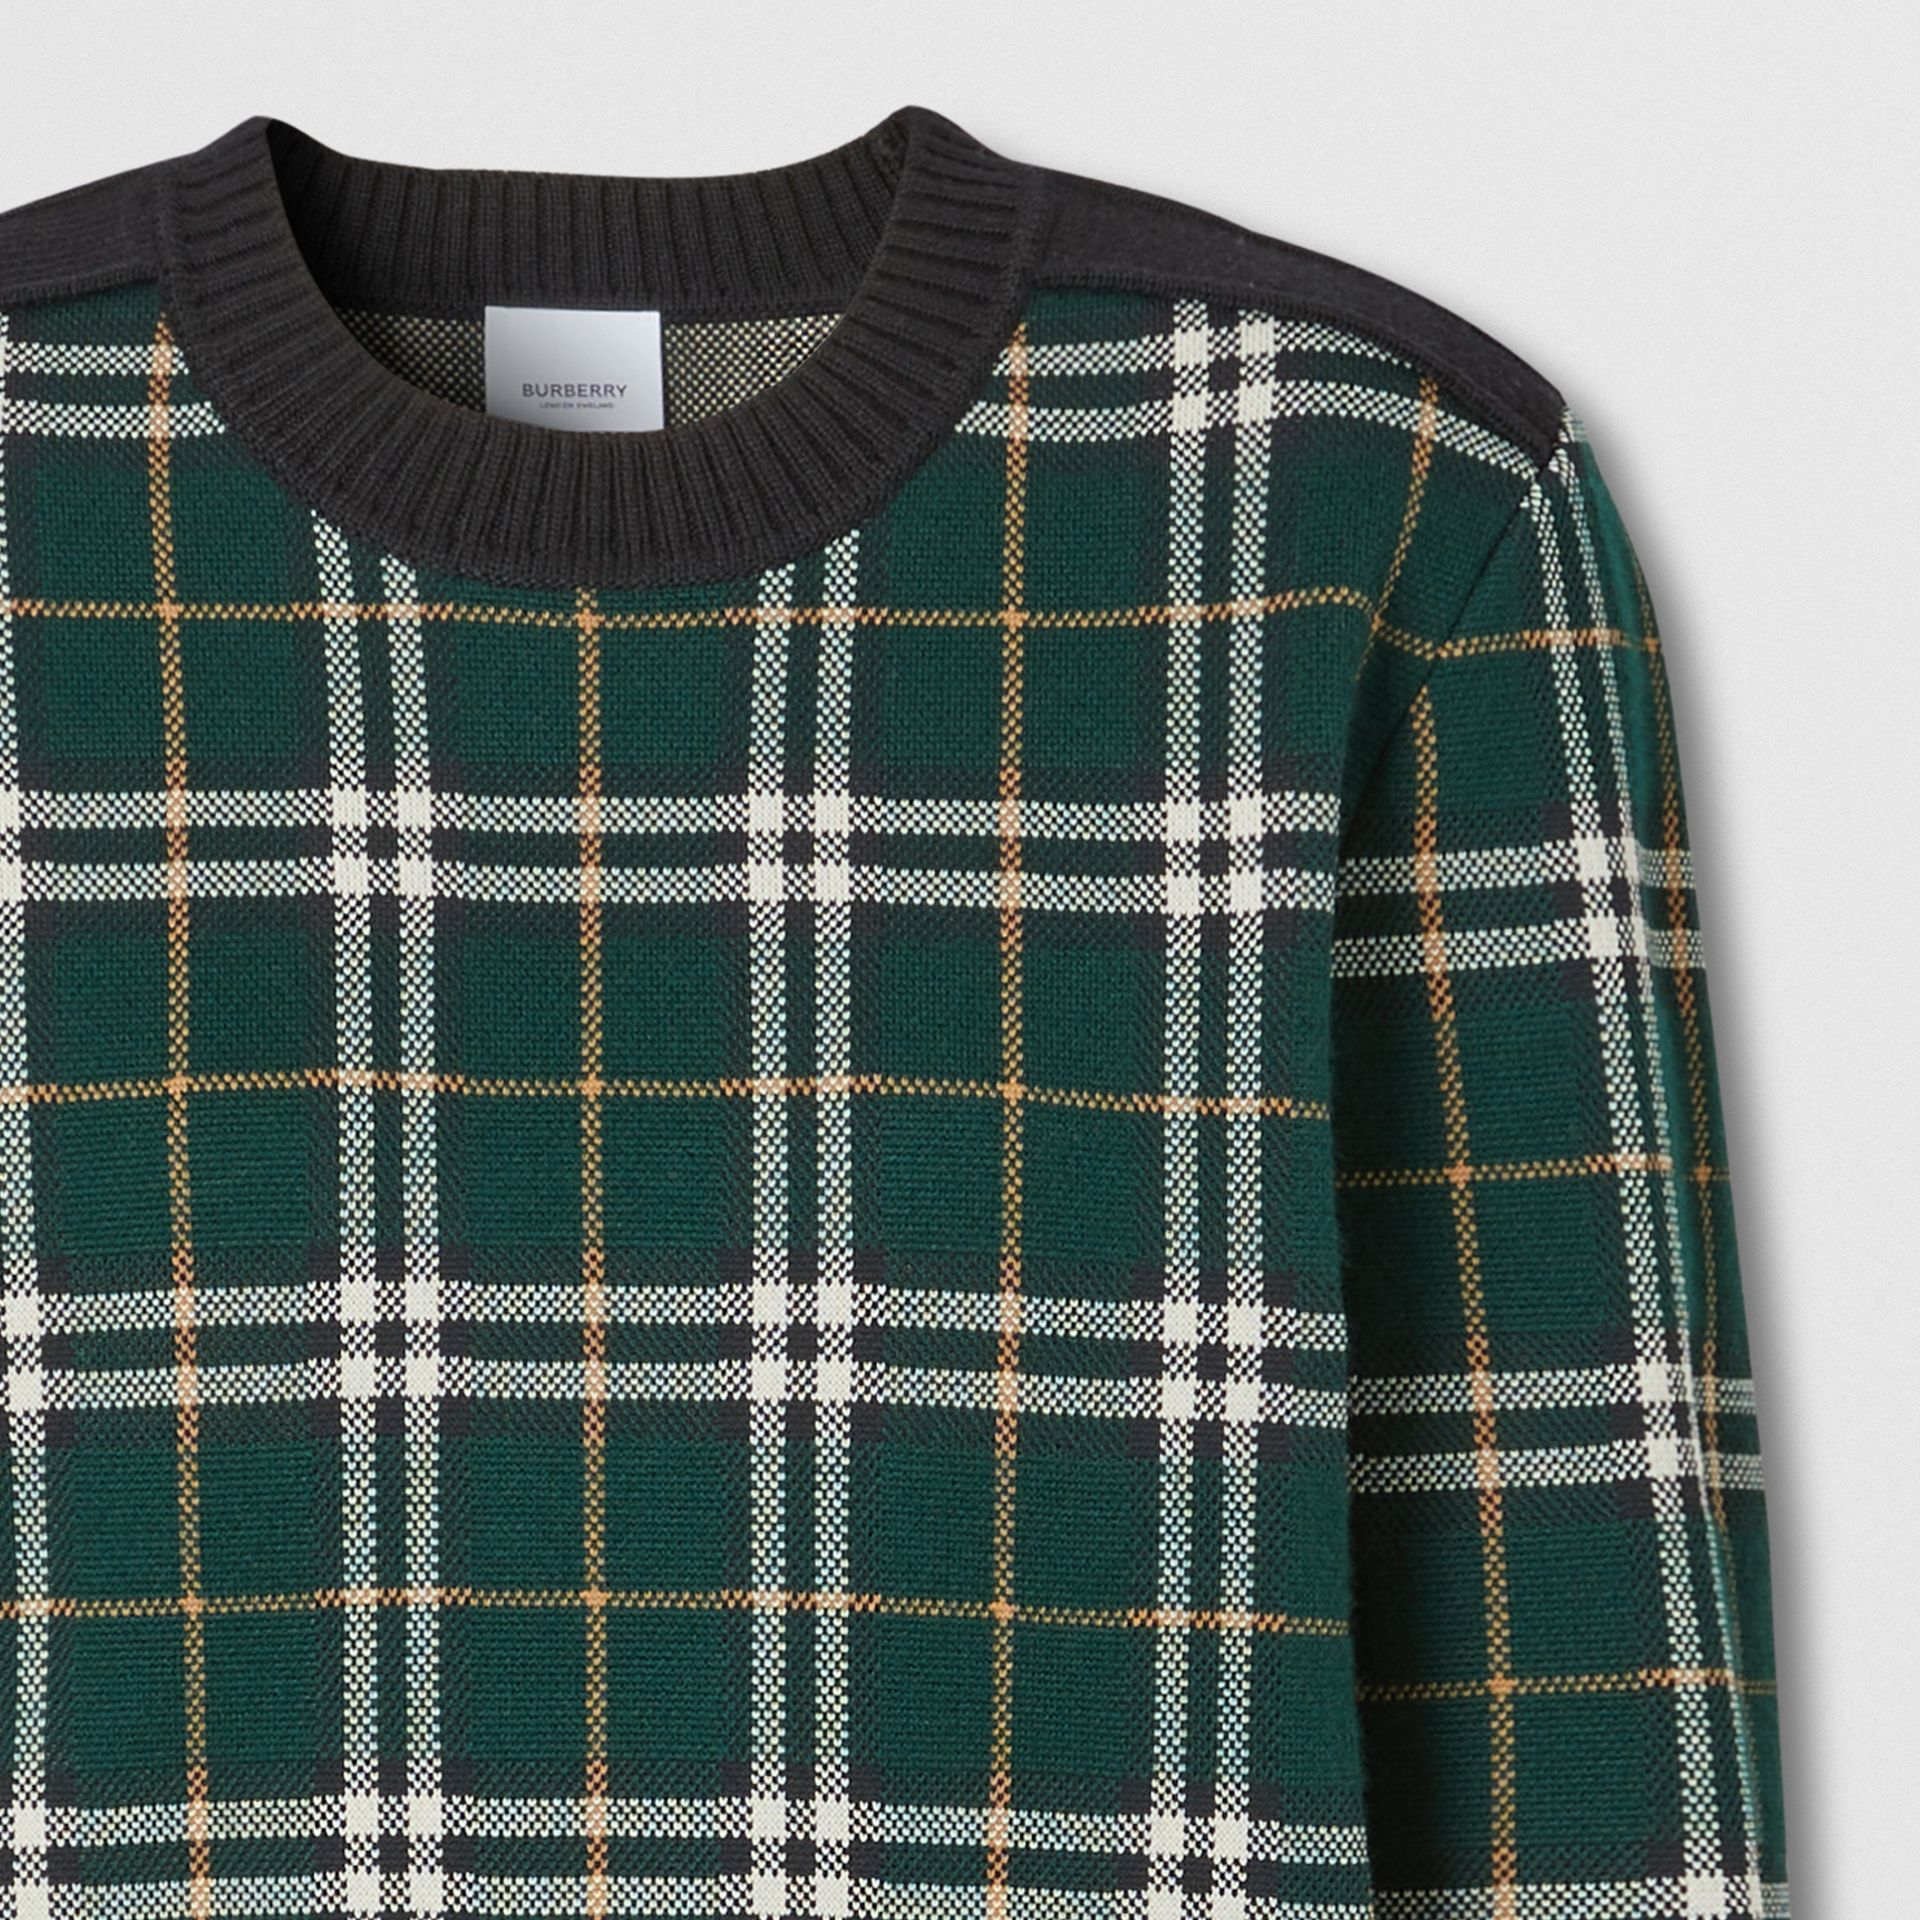 Check Technical Merino Wool Jacquard Sweater in Bottle Green - Women | Burberry - gallery image 7